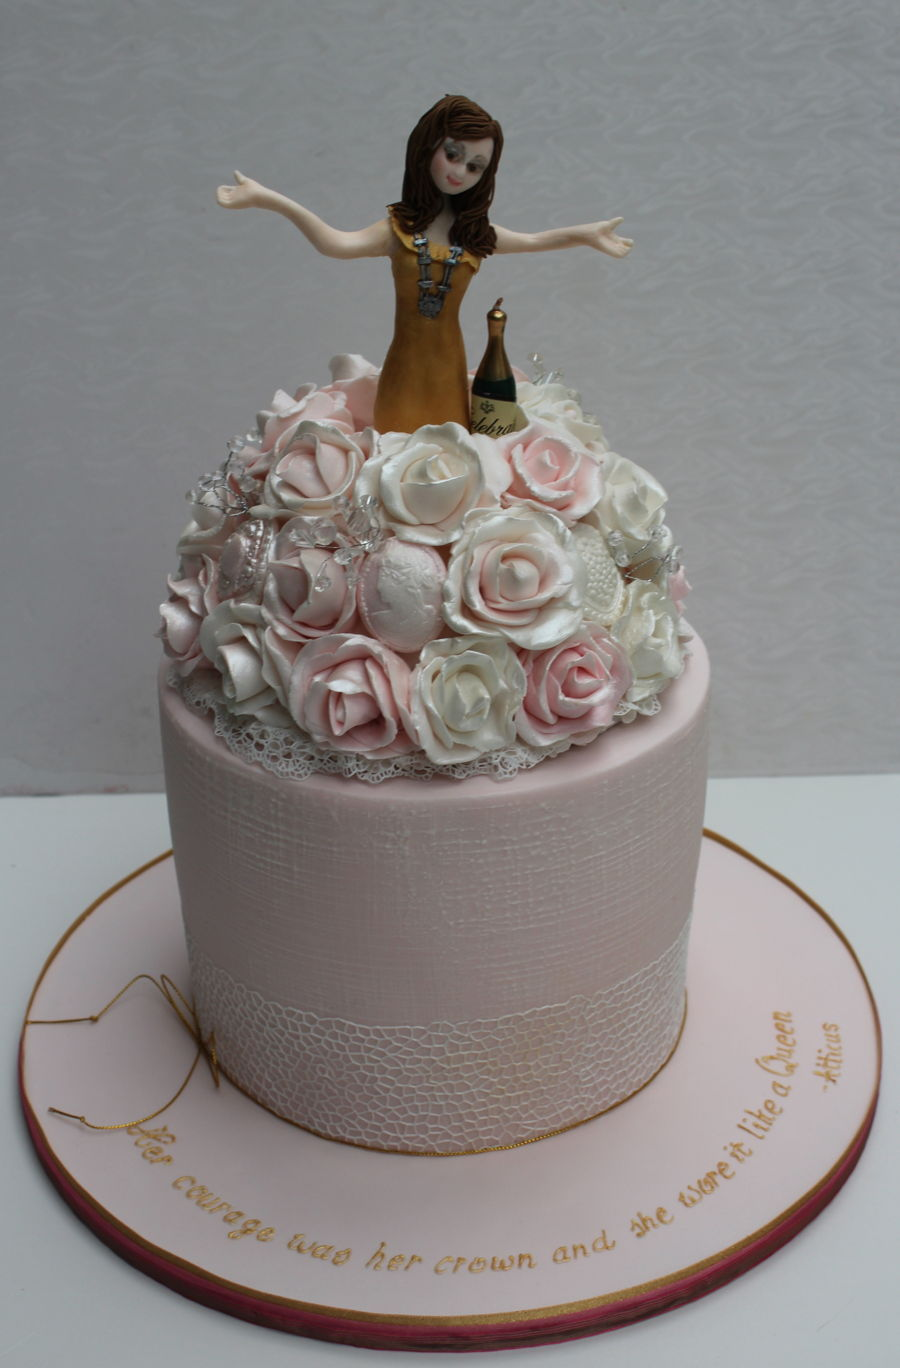 Among The Roses on Cake Central